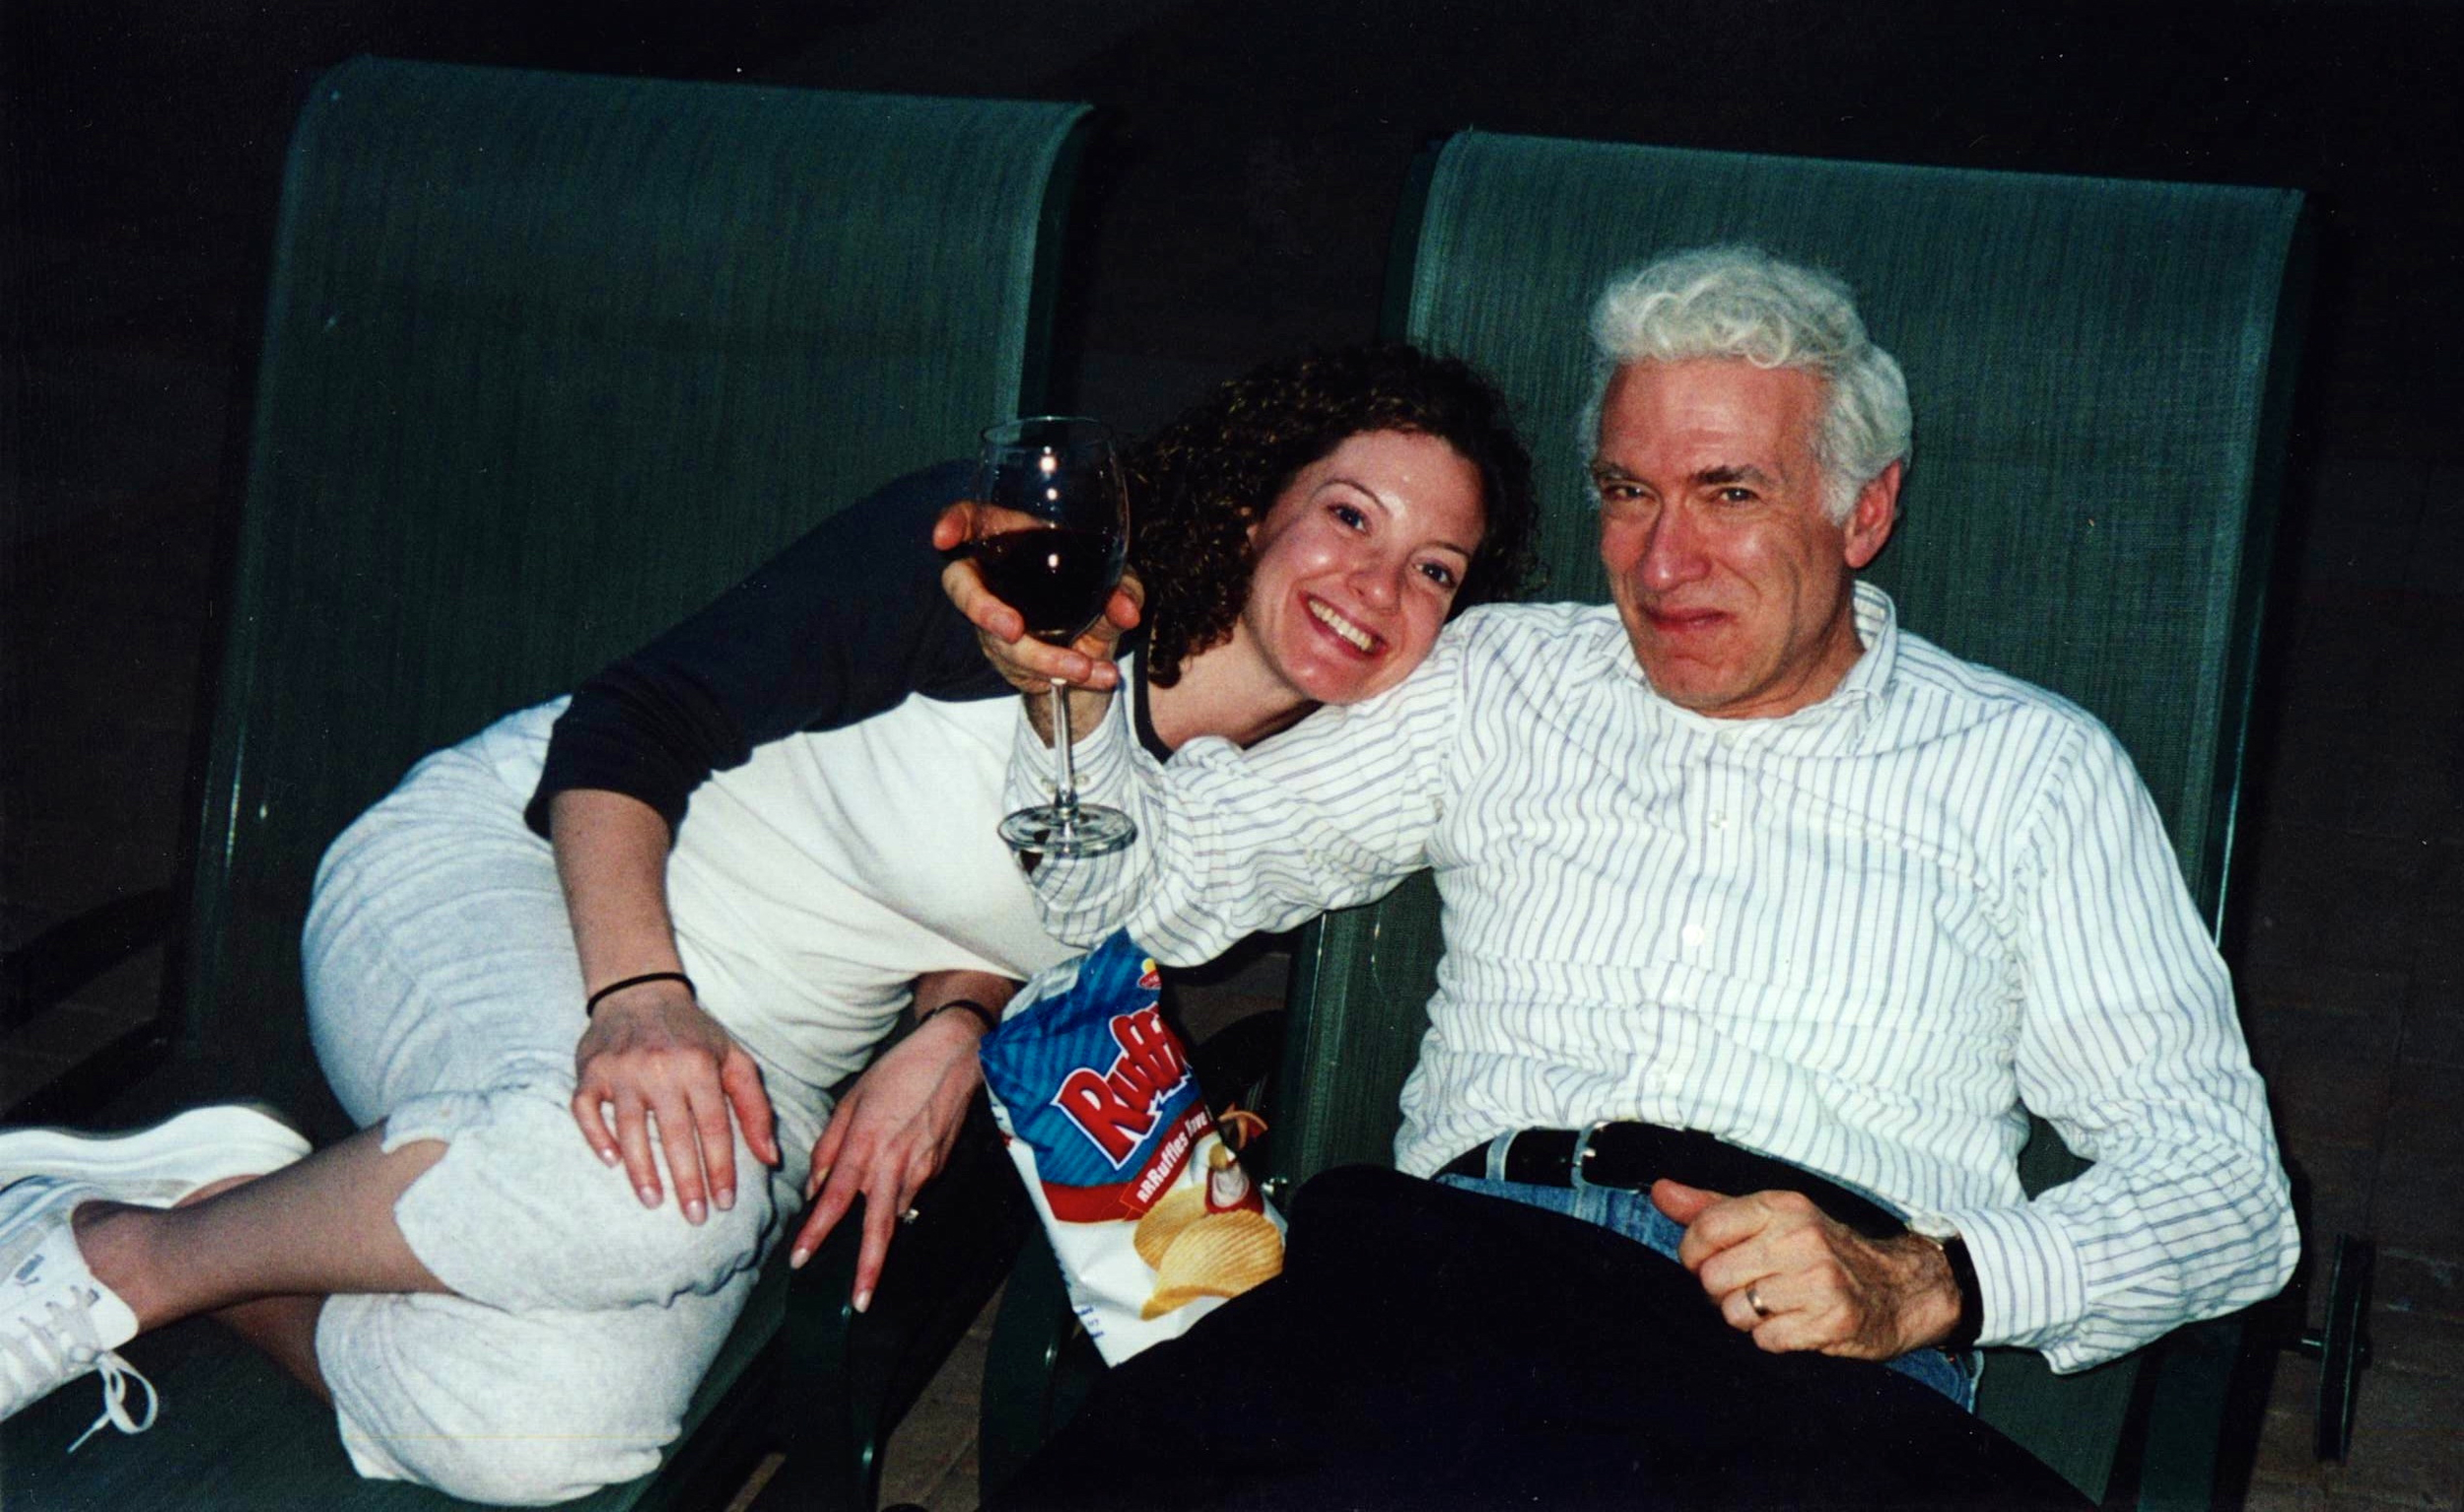 My Dad and I were SUPER happy here.  A random night eating chips and drinking wine.   But, you'll find this odd.  Or maybe you won't.  The best part of this photo are the chips.  Yes, the Ruffles chips.  My father DEVOURED bags of chips -if he could.  His favorite food.  All who knew him always had them on hand when he visited.  They are part of his story.  Who he was, what he liked.  It's captured and that's important for me and my kids to remember about him.